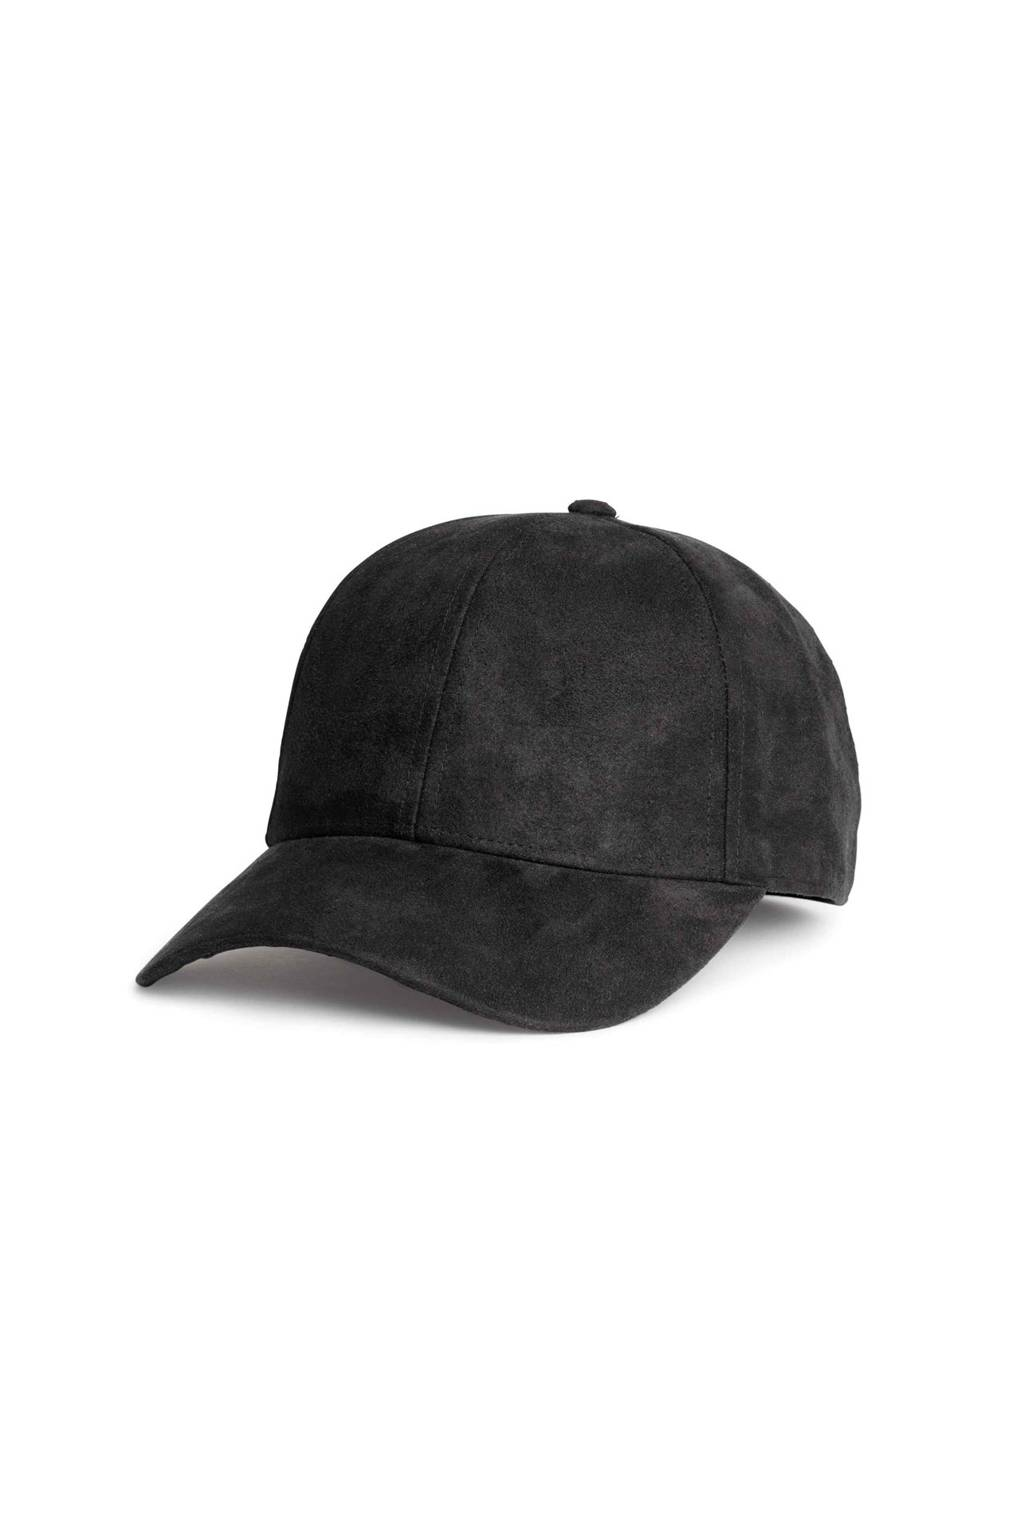 2c23838722cd4 All About The Baseball Cap - How To Wear Now Best To Buy